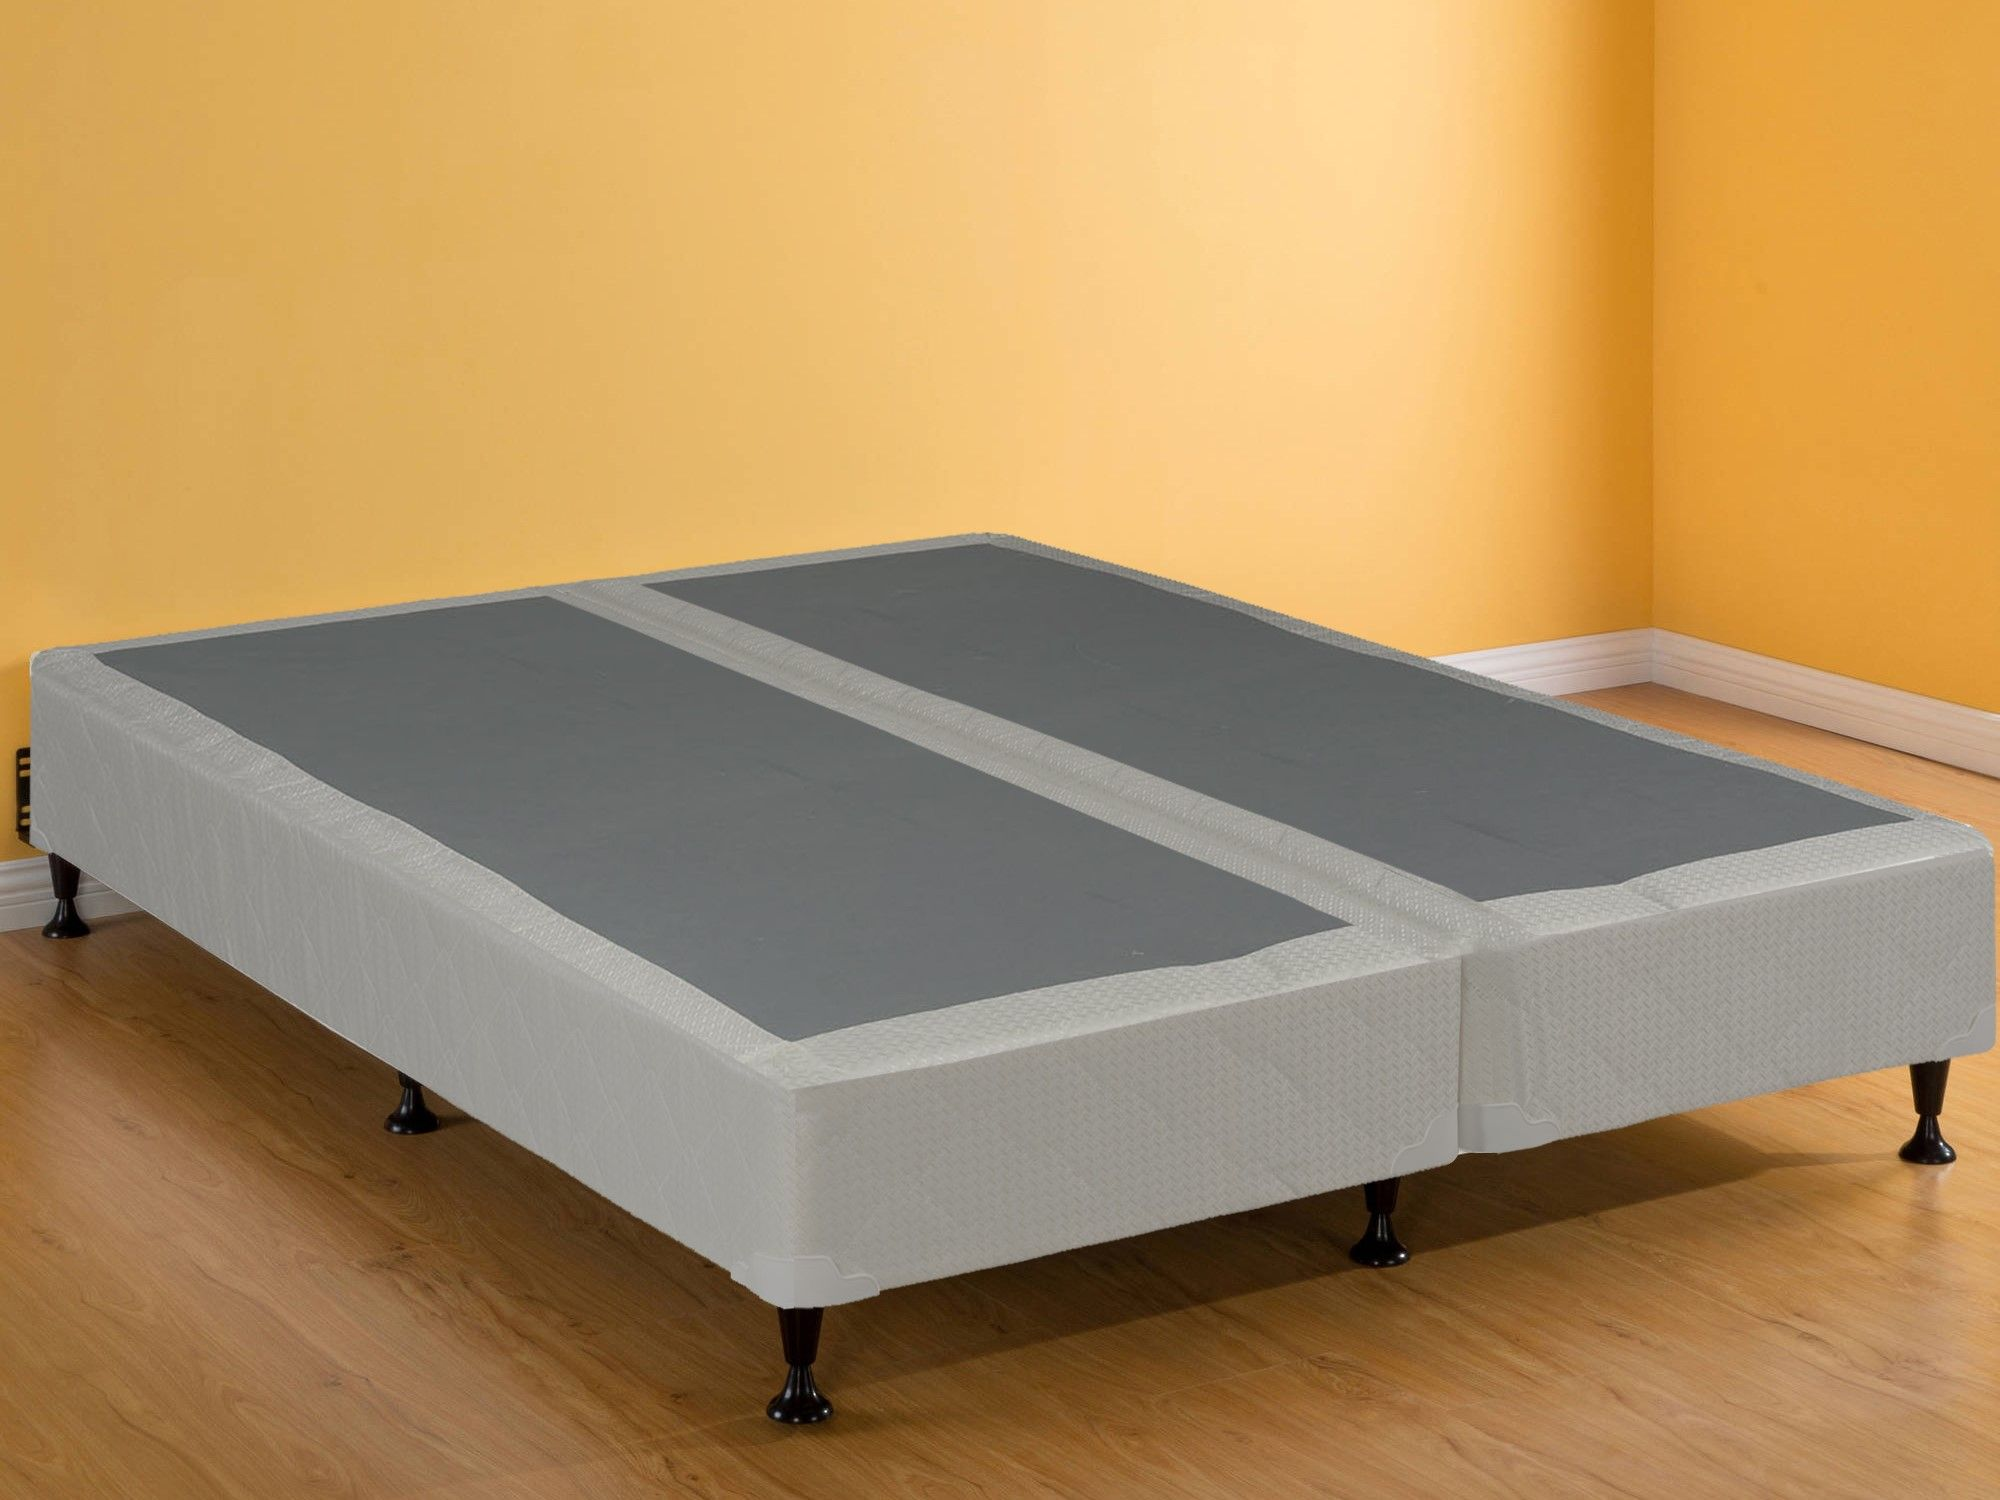 Reyteam 8 Split Box Spring Foundation For Any Kind Mattress Queen